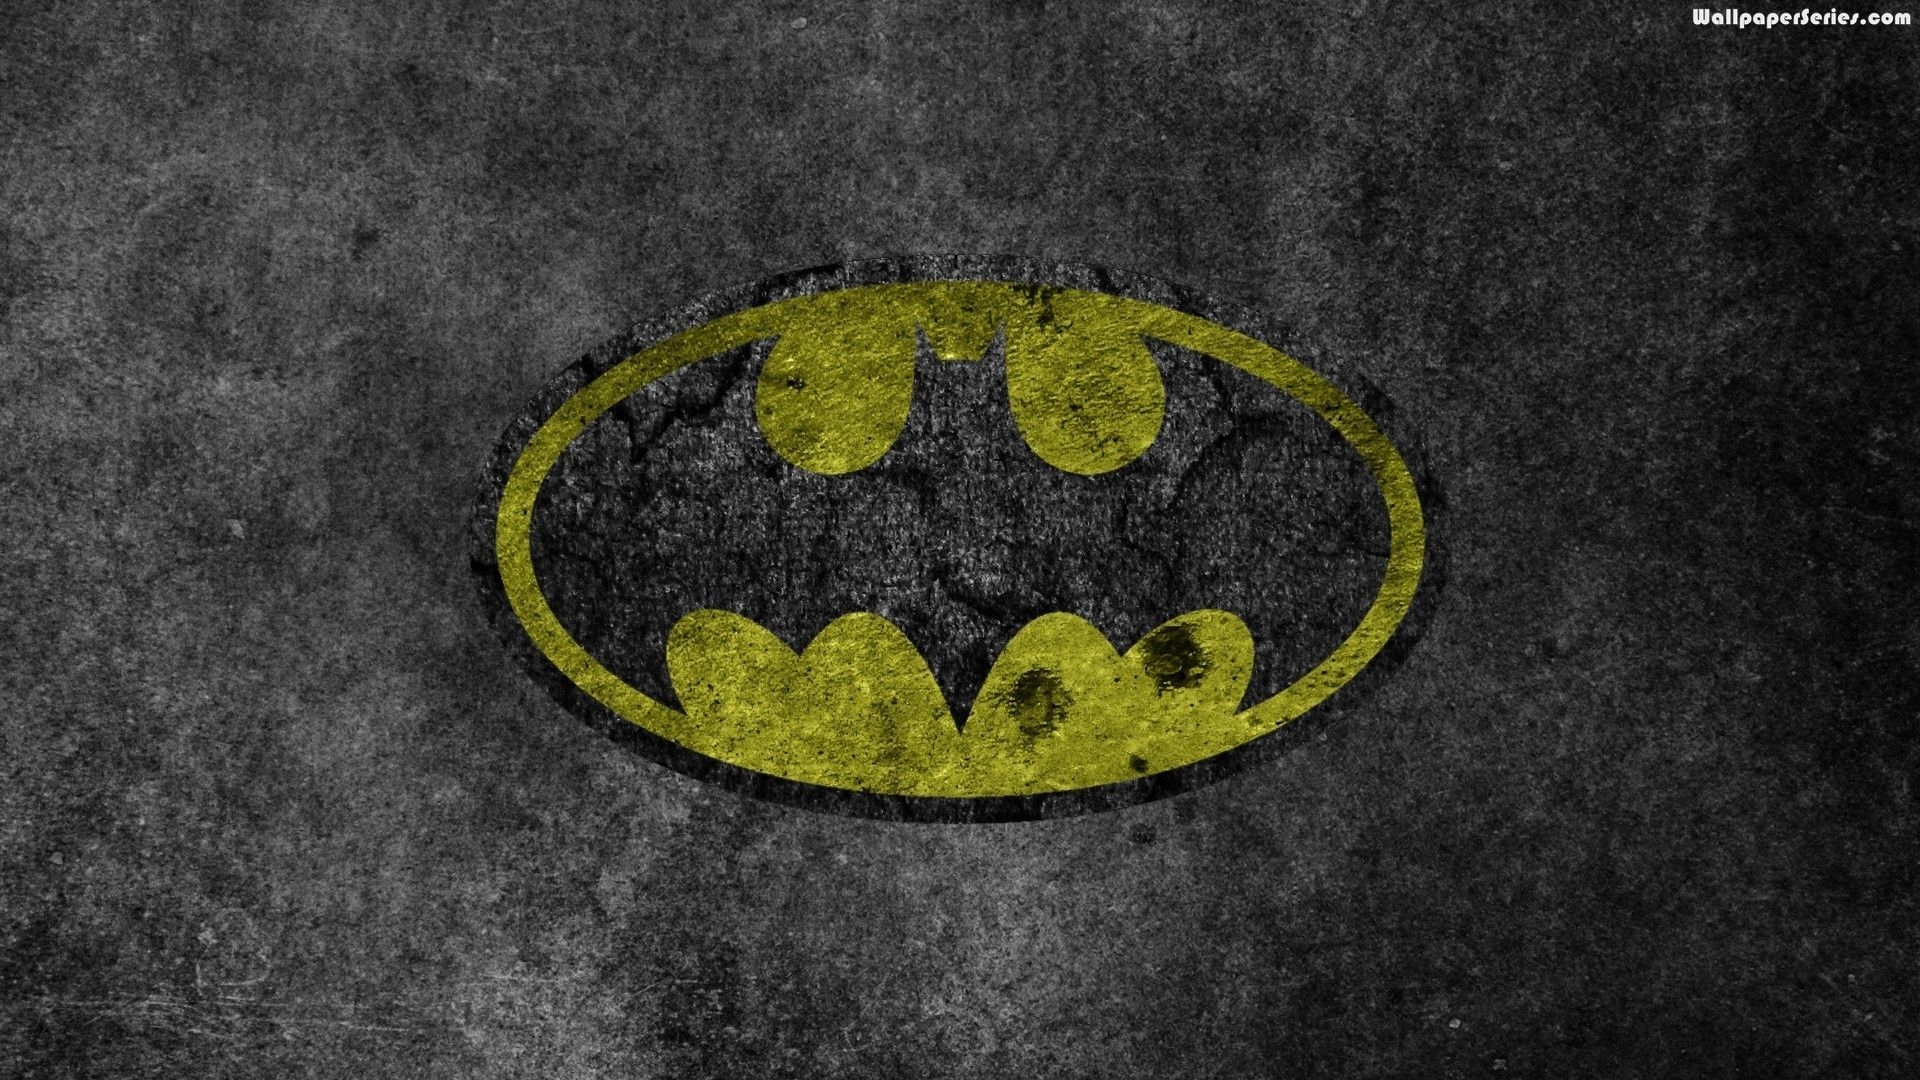 Batman Hd Wallpapers For Desktop Page 1920x1080 HD 56